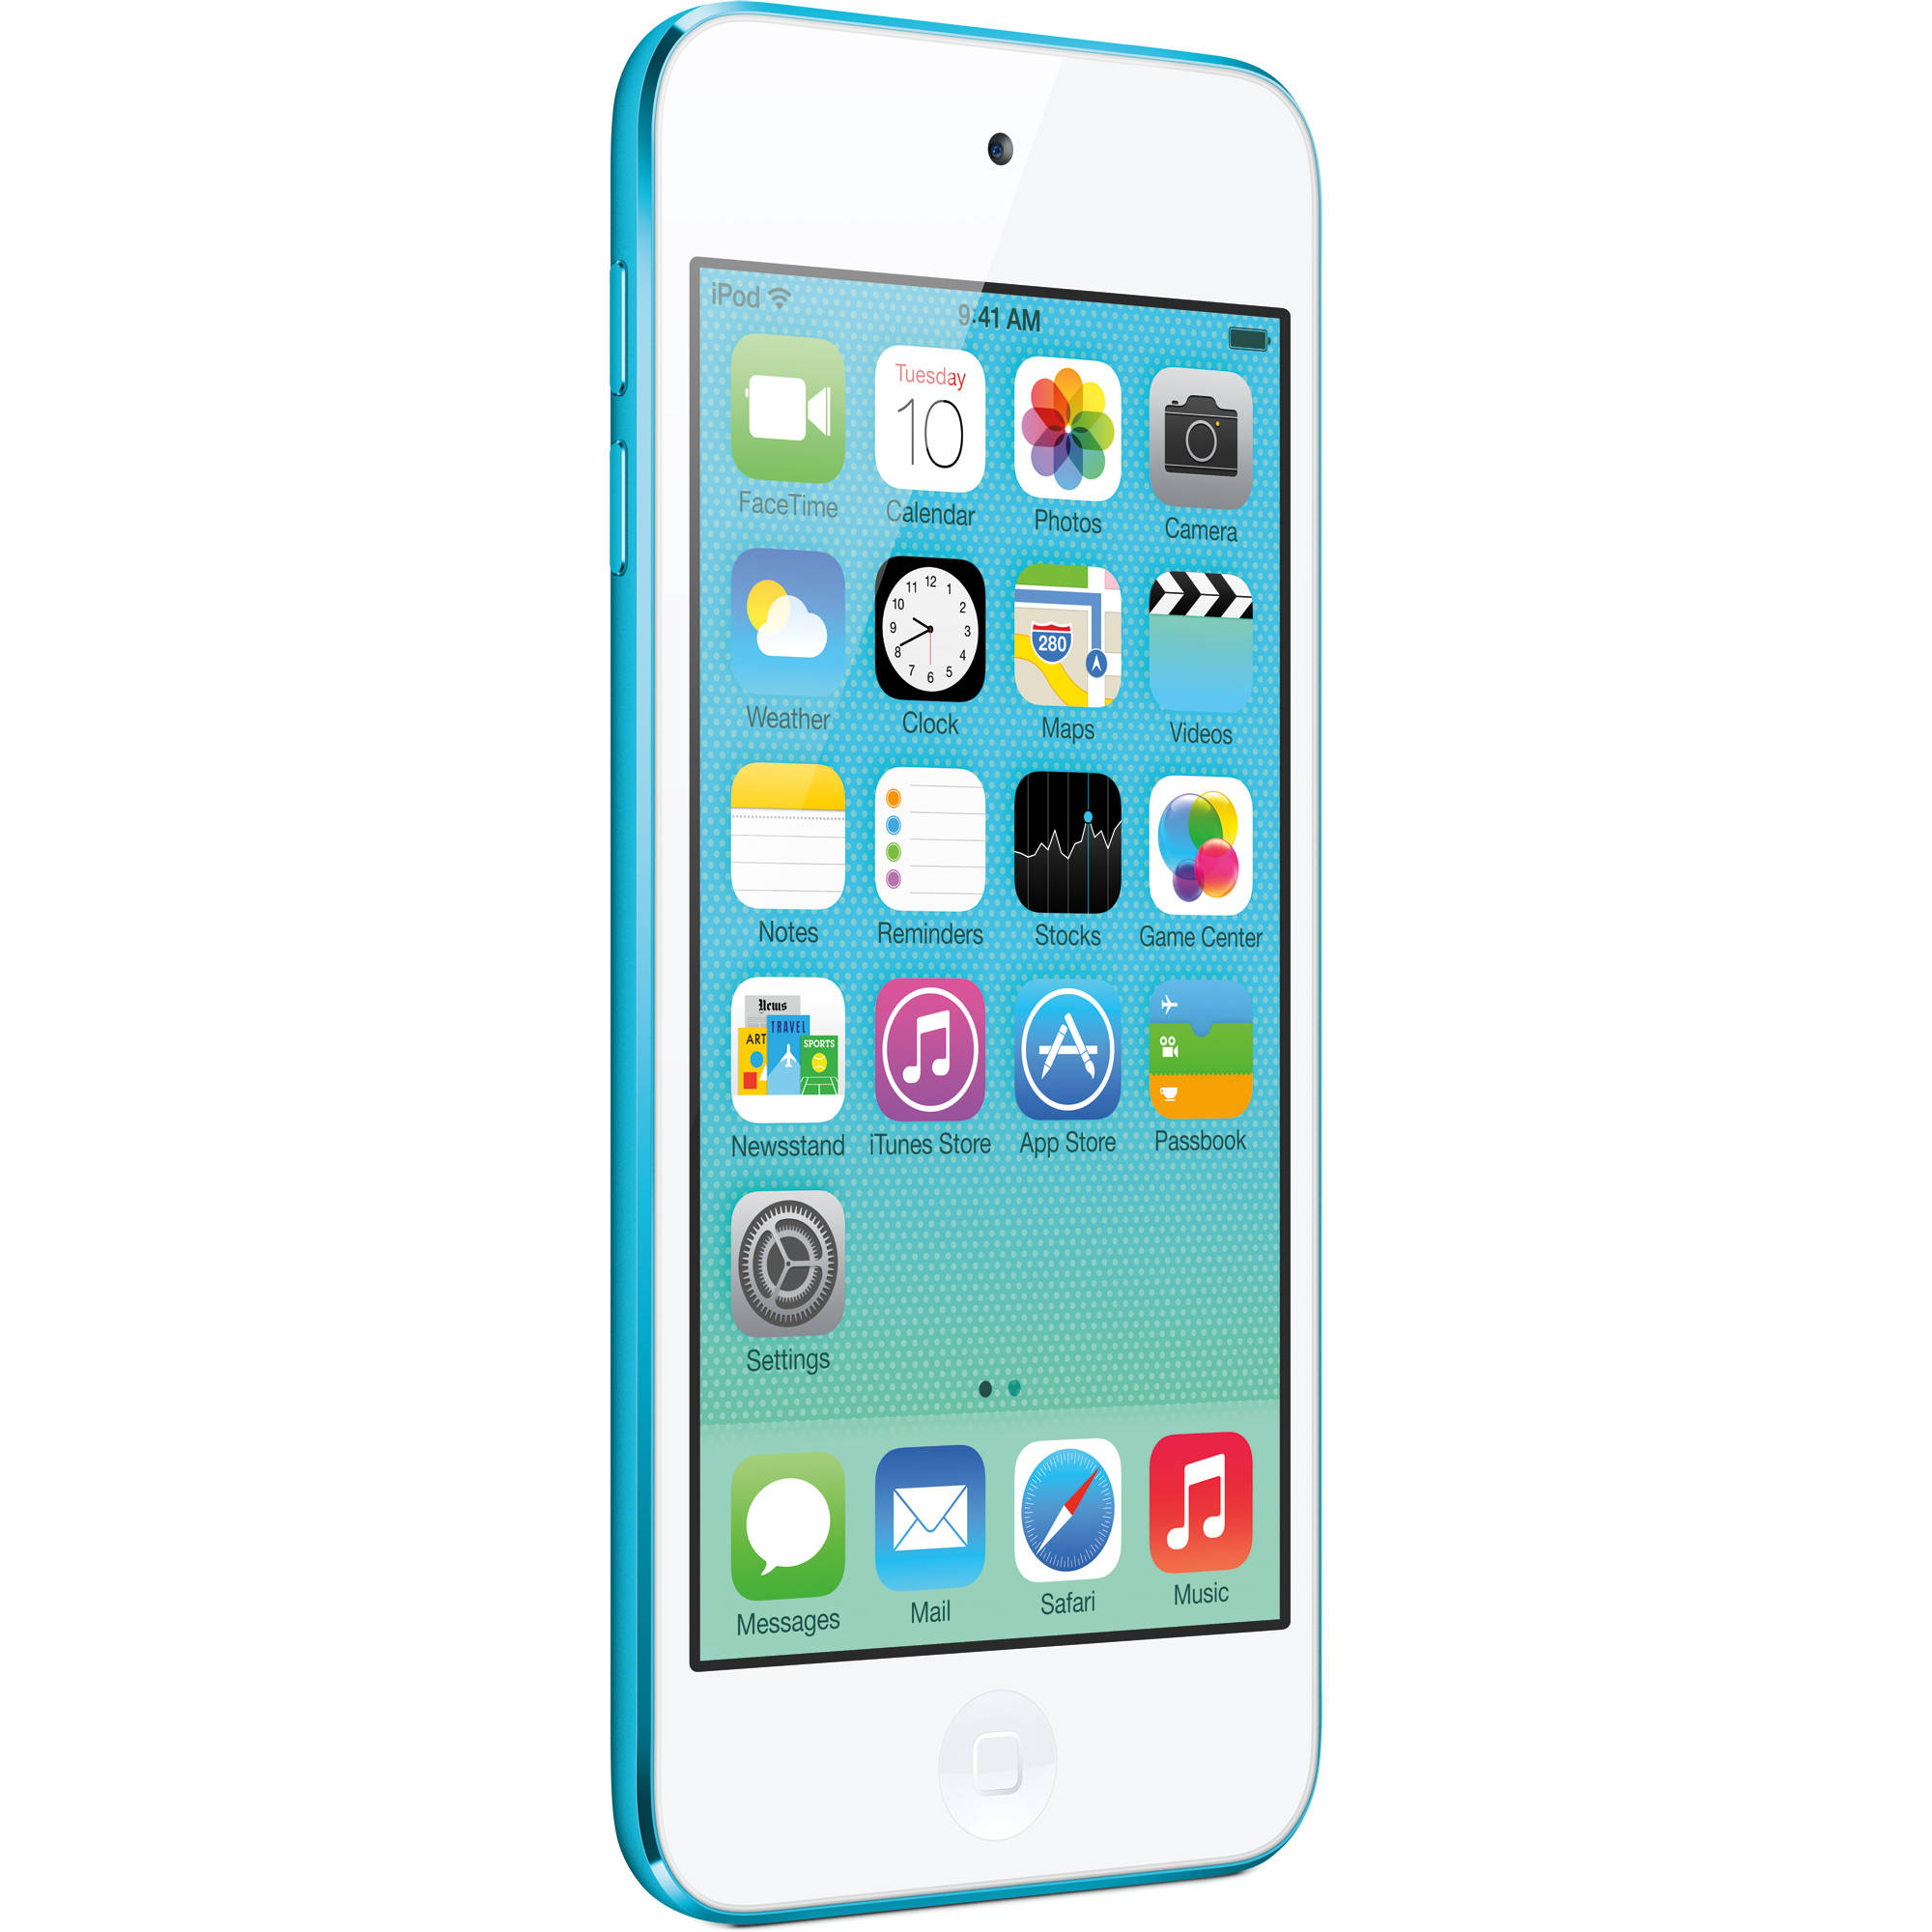 Apple 32GB iPod touch (Blue) (5th Generation) MD717LL/A B&H